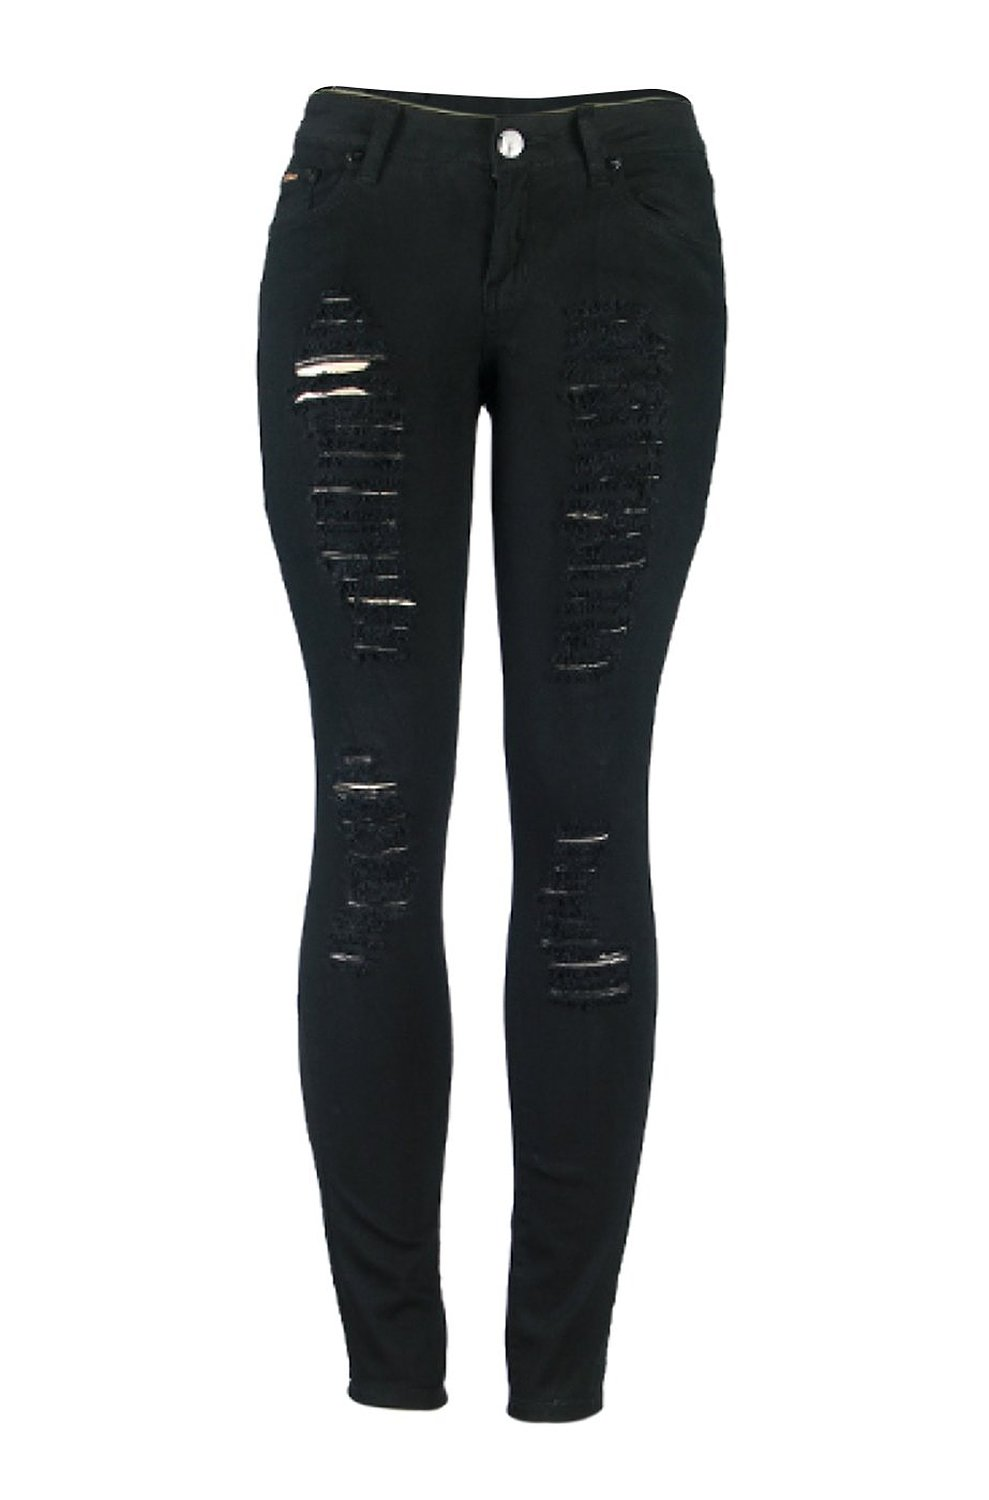 2LUV Women's Distressed Skinny Jeans Black 7 (G778A) at Amazon Women's Clothing store: